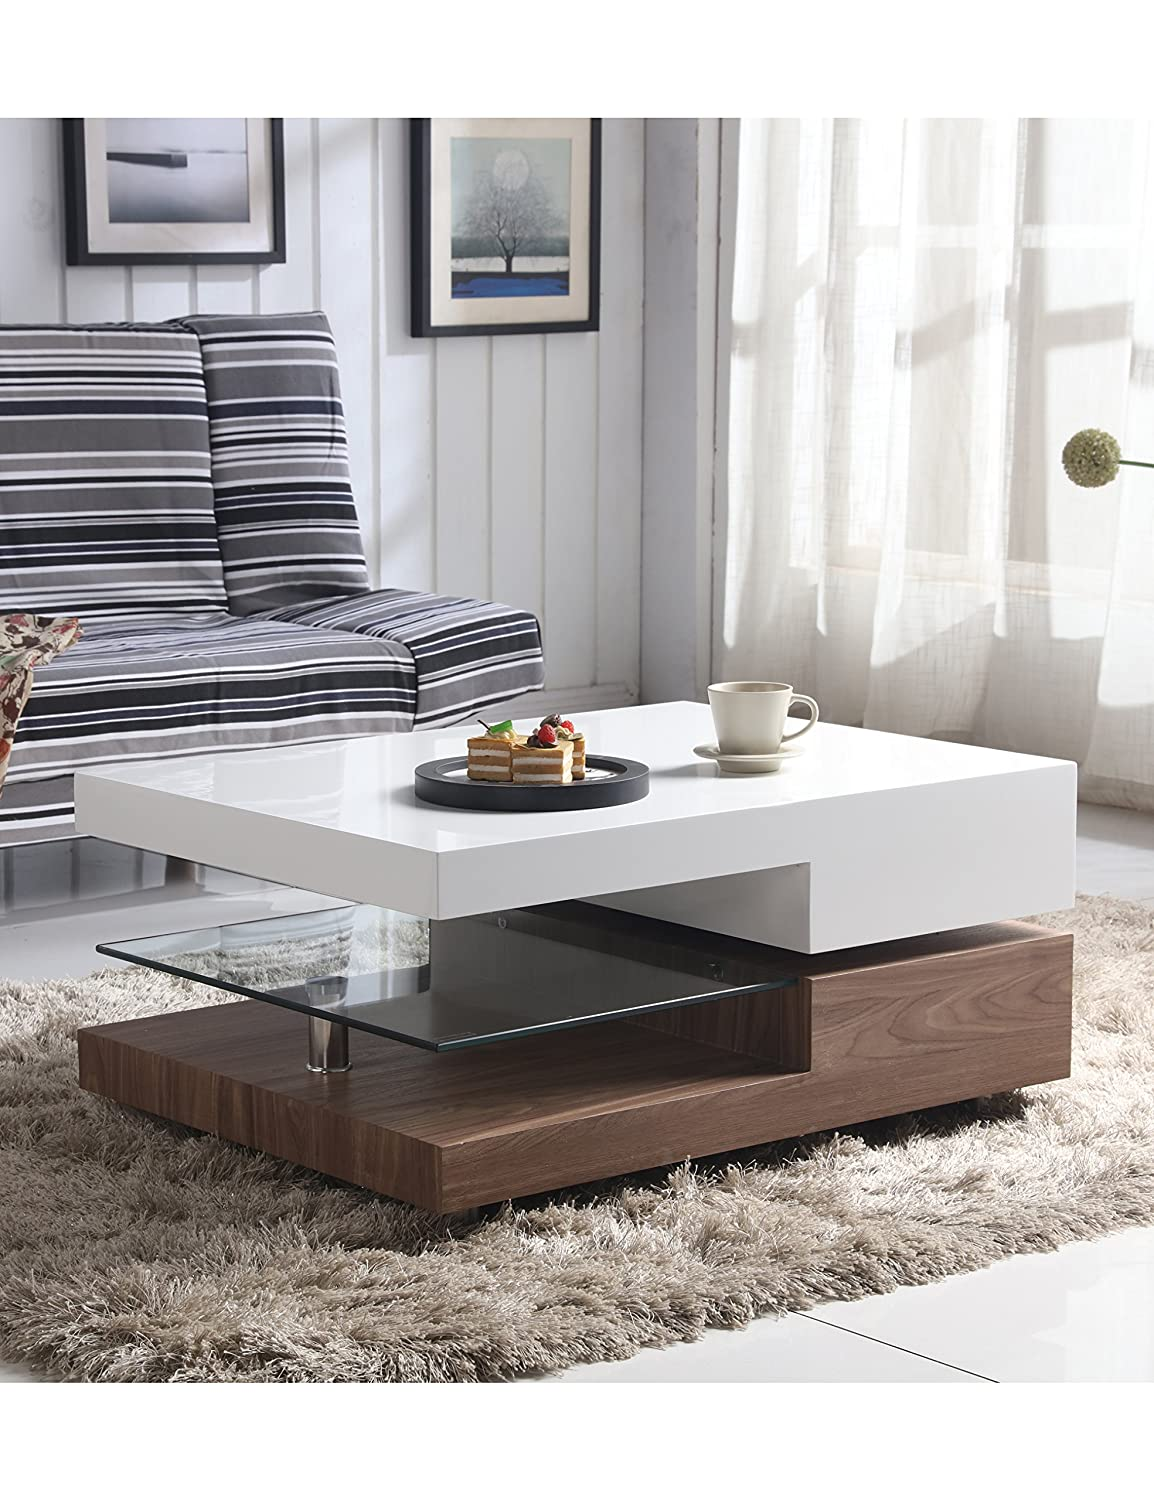 GOLDFAN Modern Coffee Table White High Gloss Swivel Living Room Furniture Ltd.